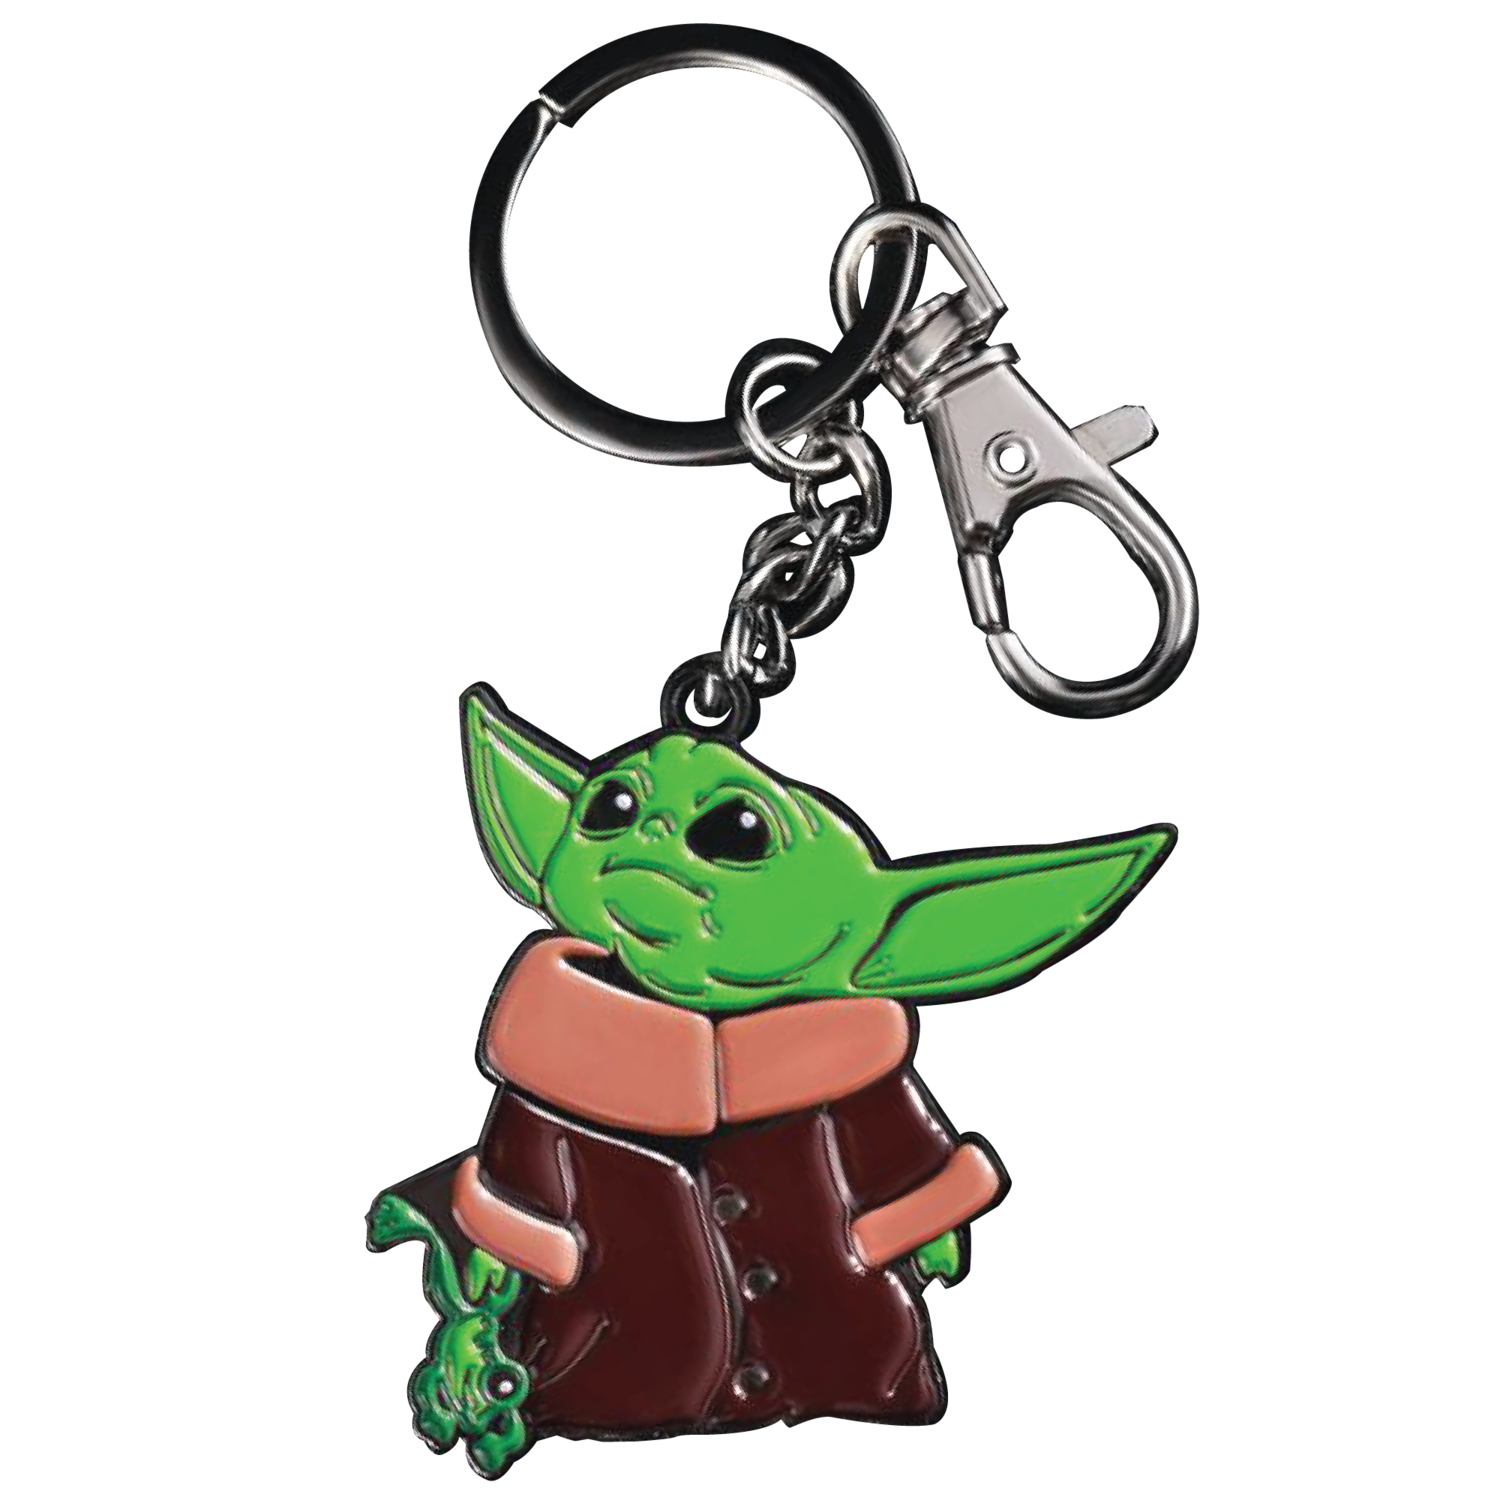 "MyPrintOn Baby Yoda 2"" with Frog Soft Enamel Nickle Plated Key-Chain with Snap Hook The Child Character from The Star Wars Disney Television Series The Mandalorian"